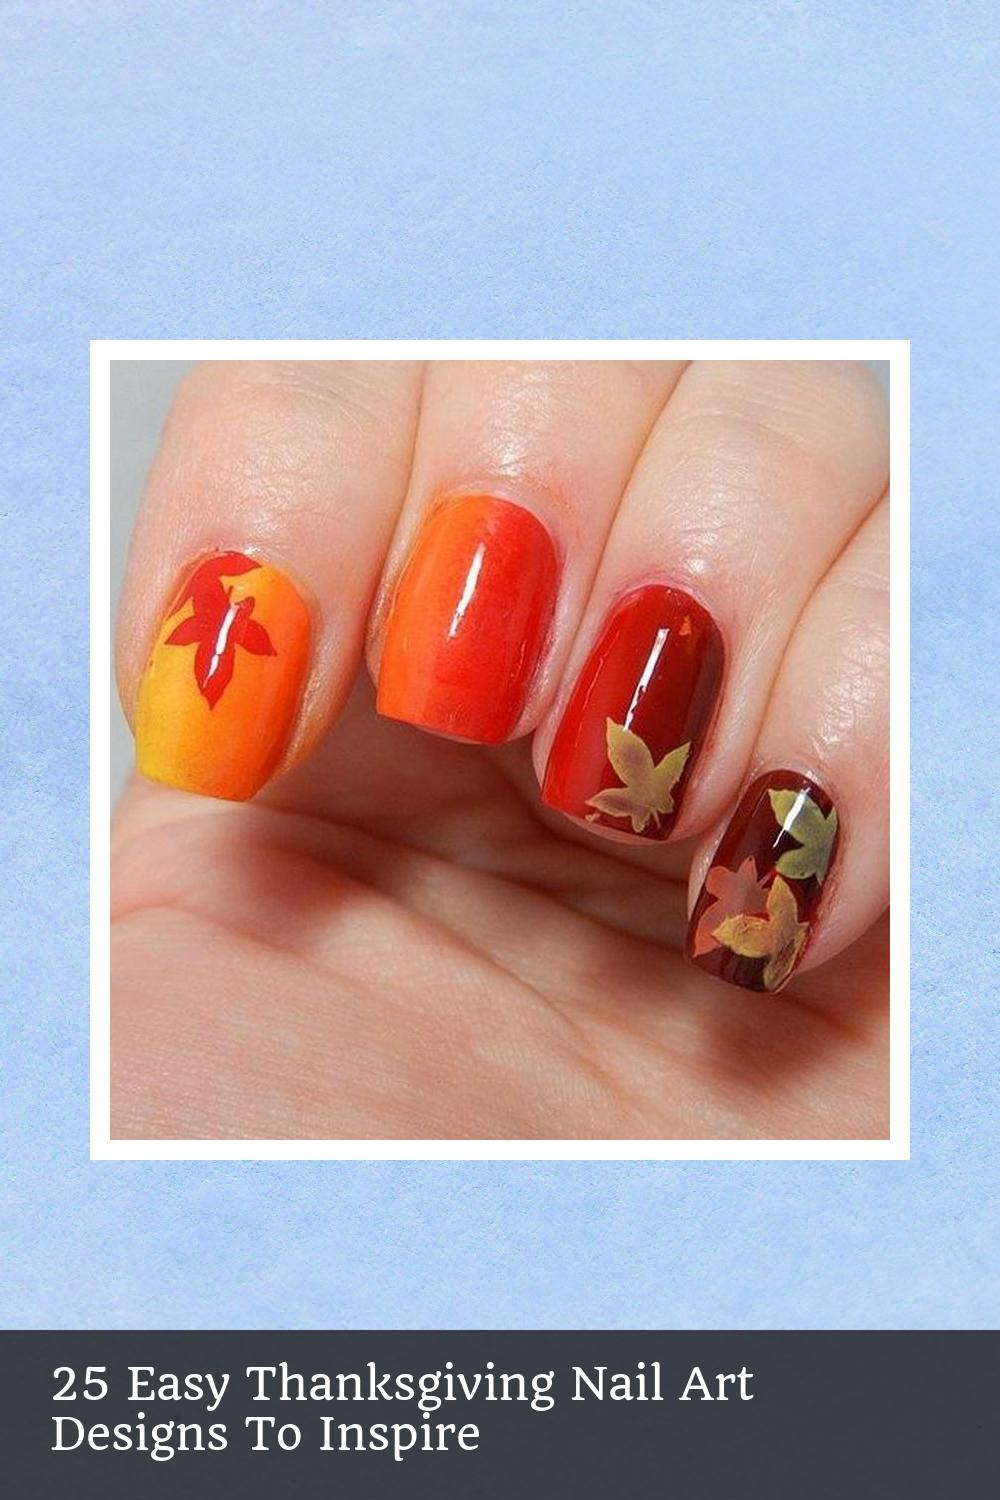 25 Easy Thanksgiving Nail Art Designs To Inspire 17